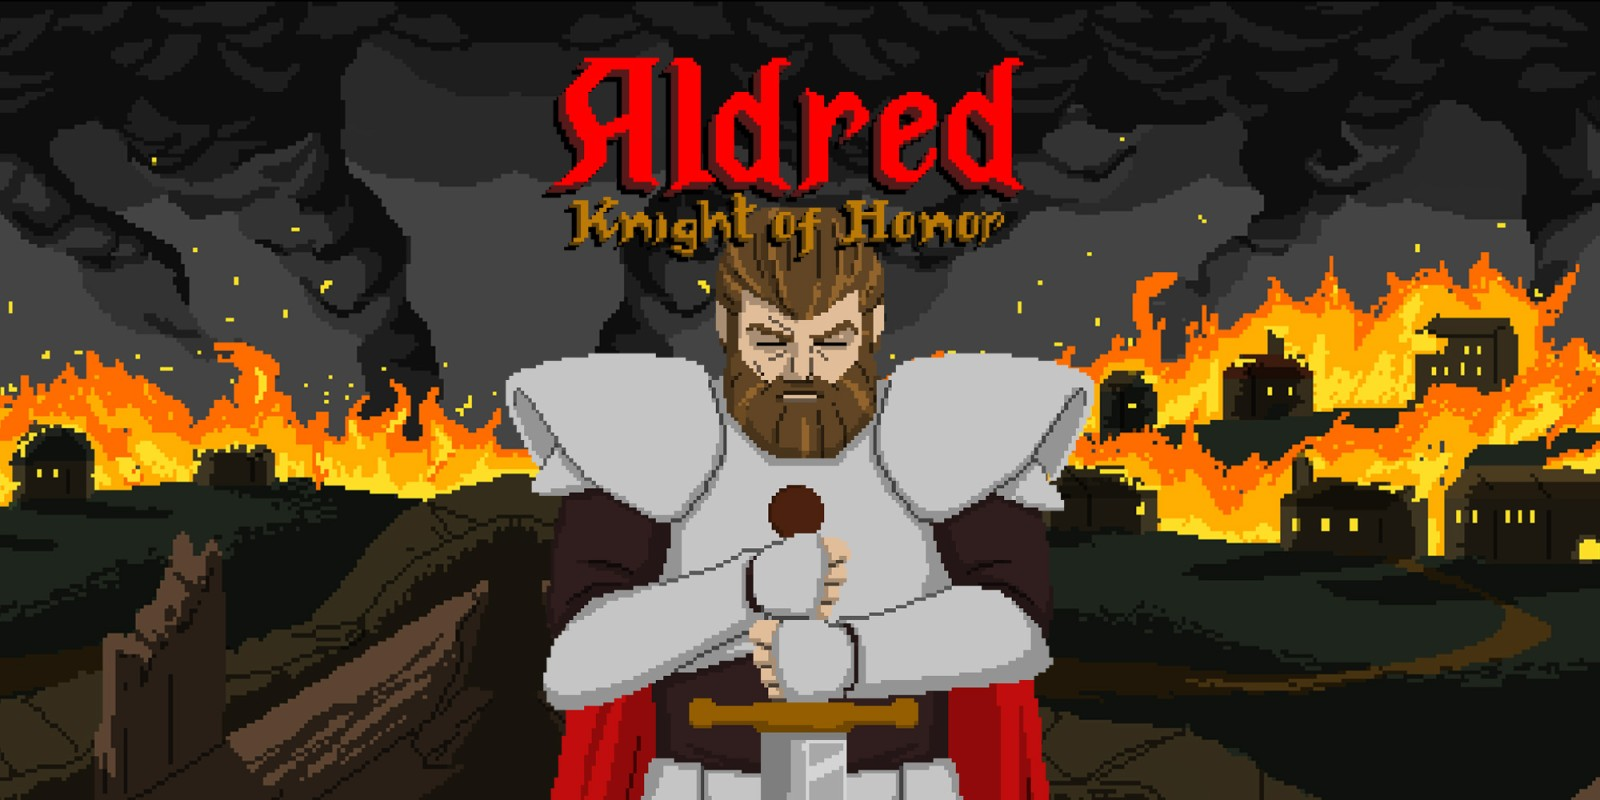 Aldred: Knight of Honor выйдет на Switch